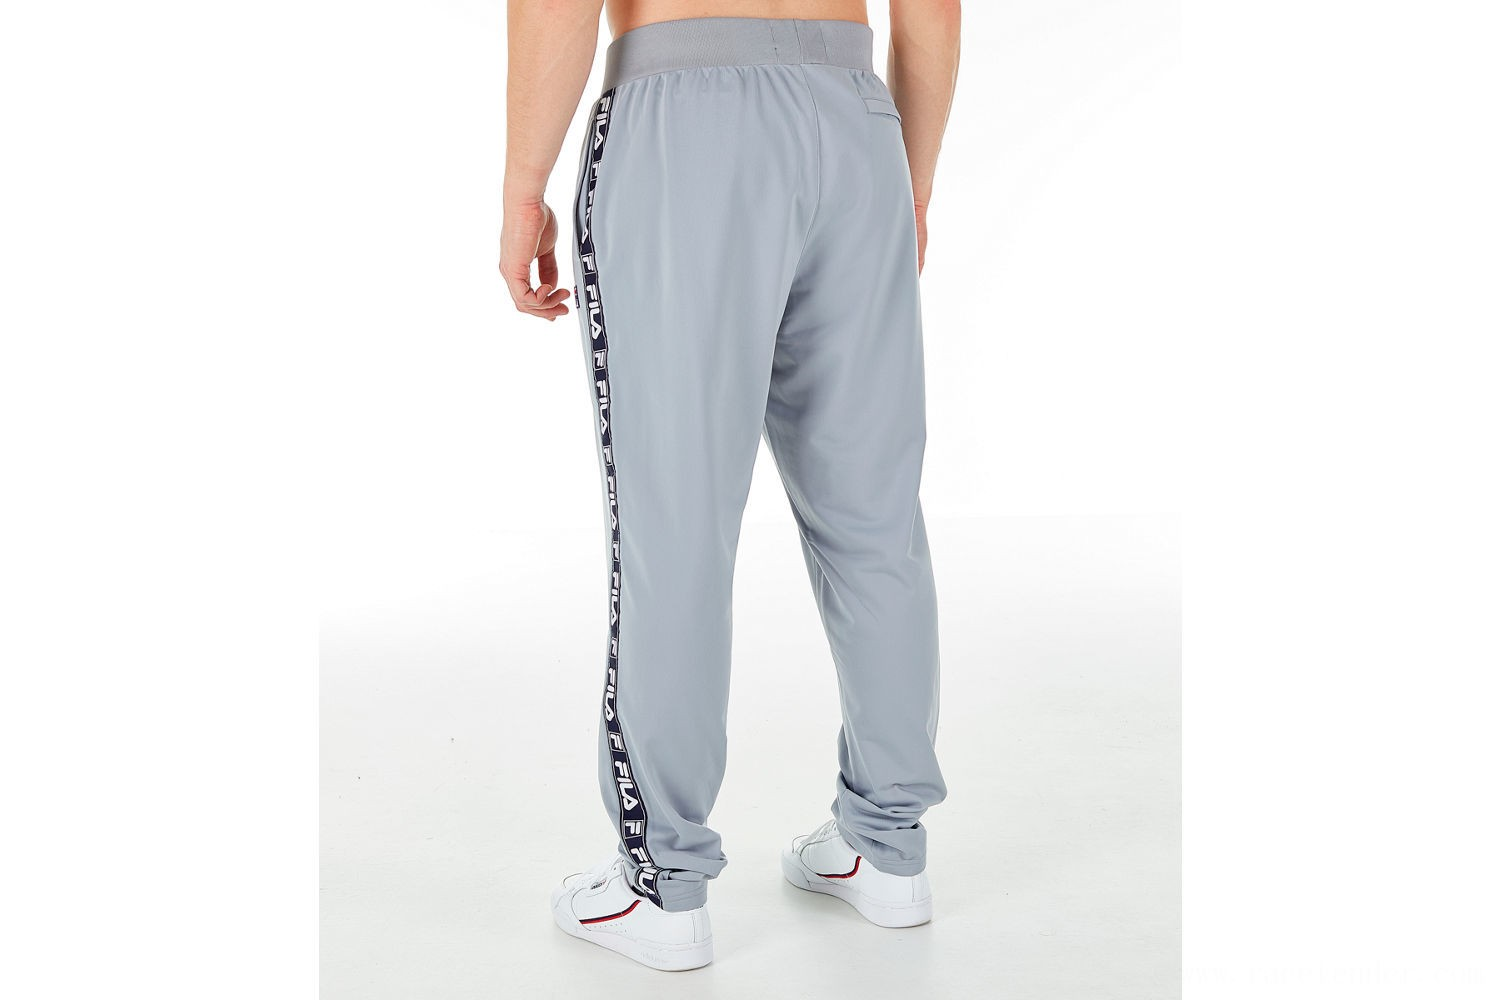 Fila Men's Tag Tricot Track Pants - Silver